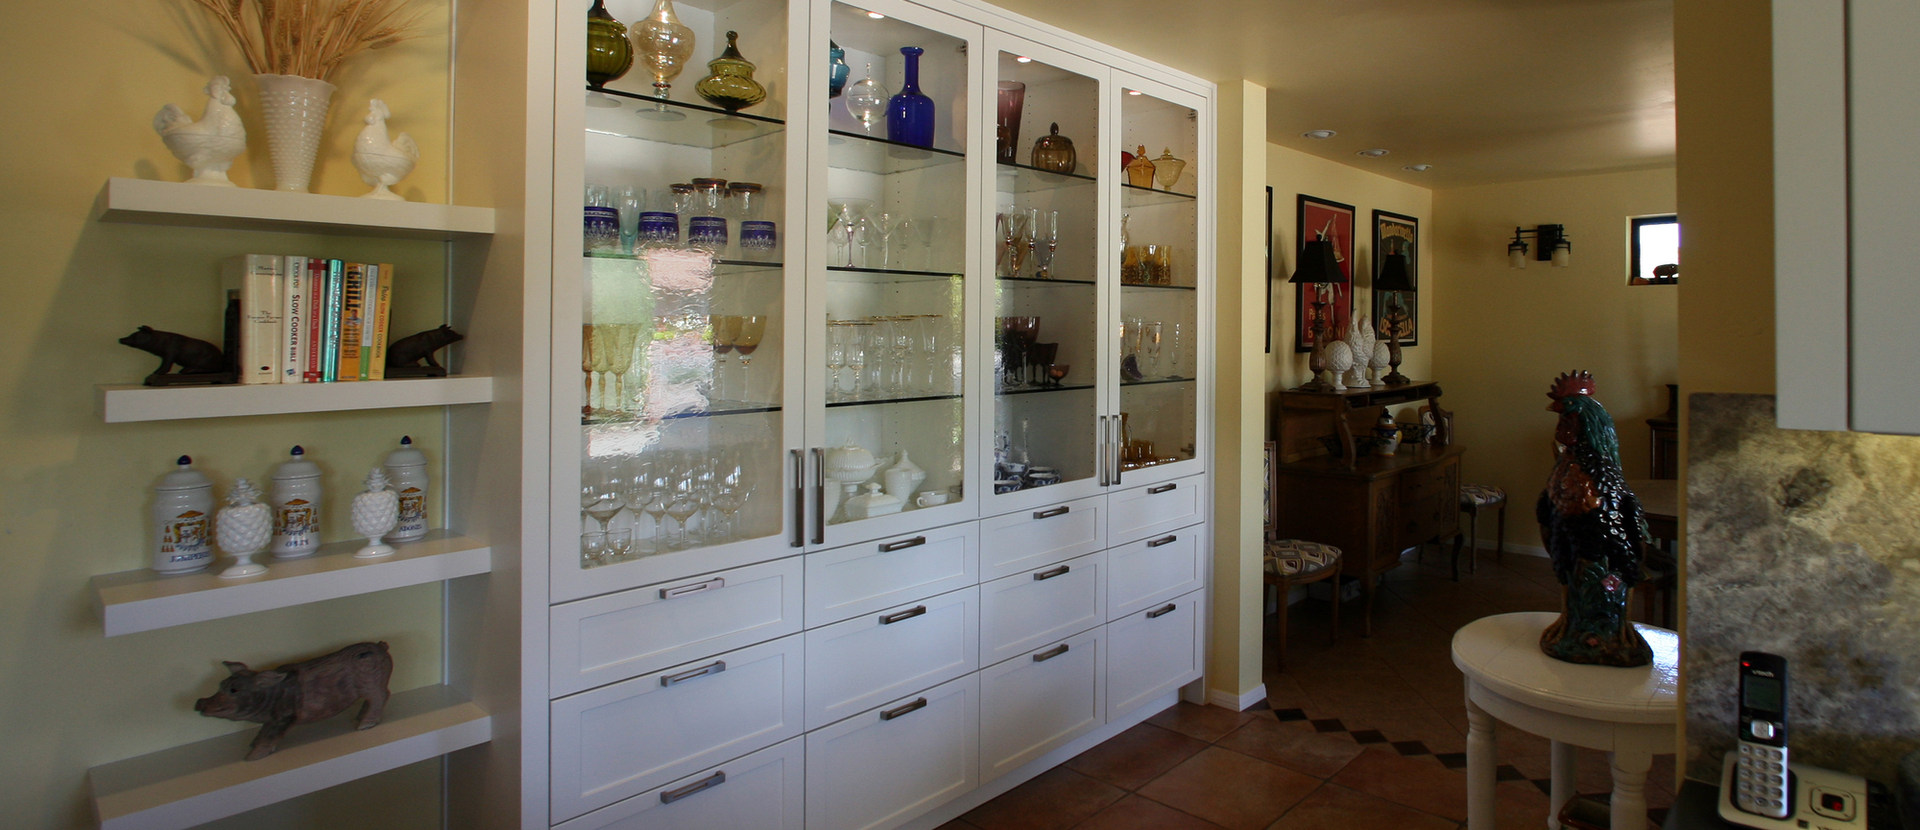 KITCHEN DISPLAY CABINETRY